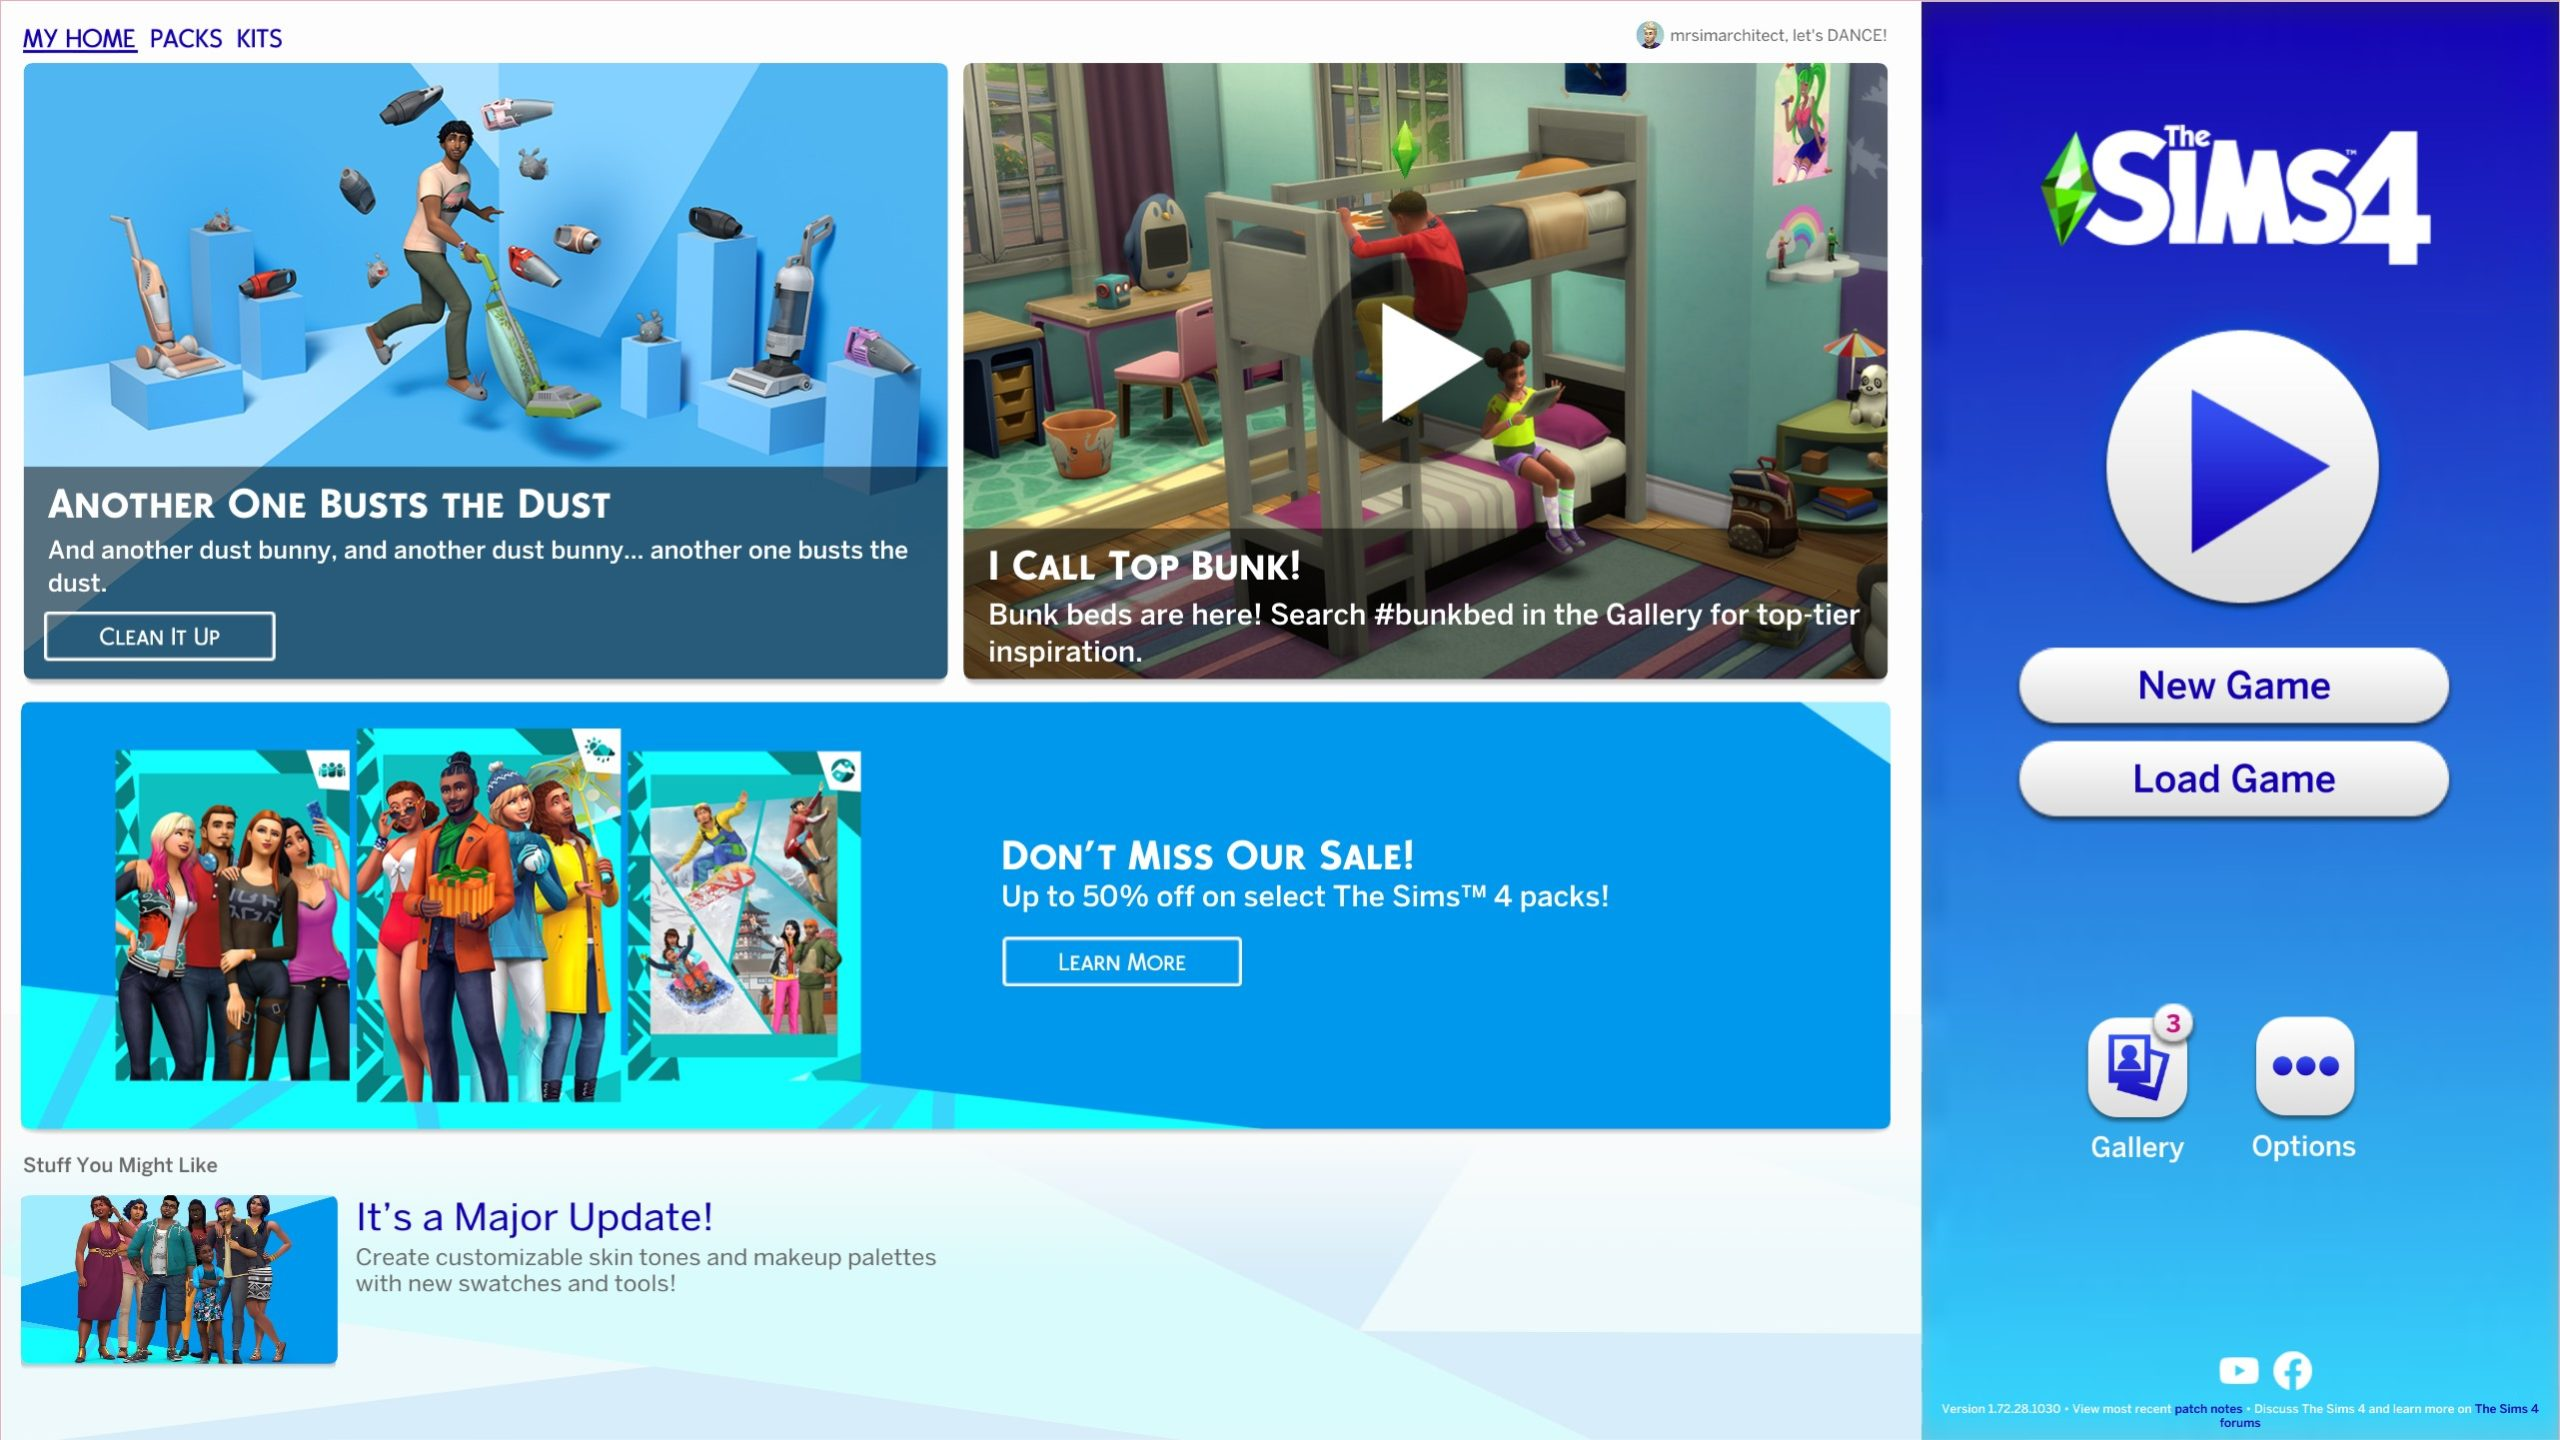 The Sims 4 1.72.28.1030 Title Screen